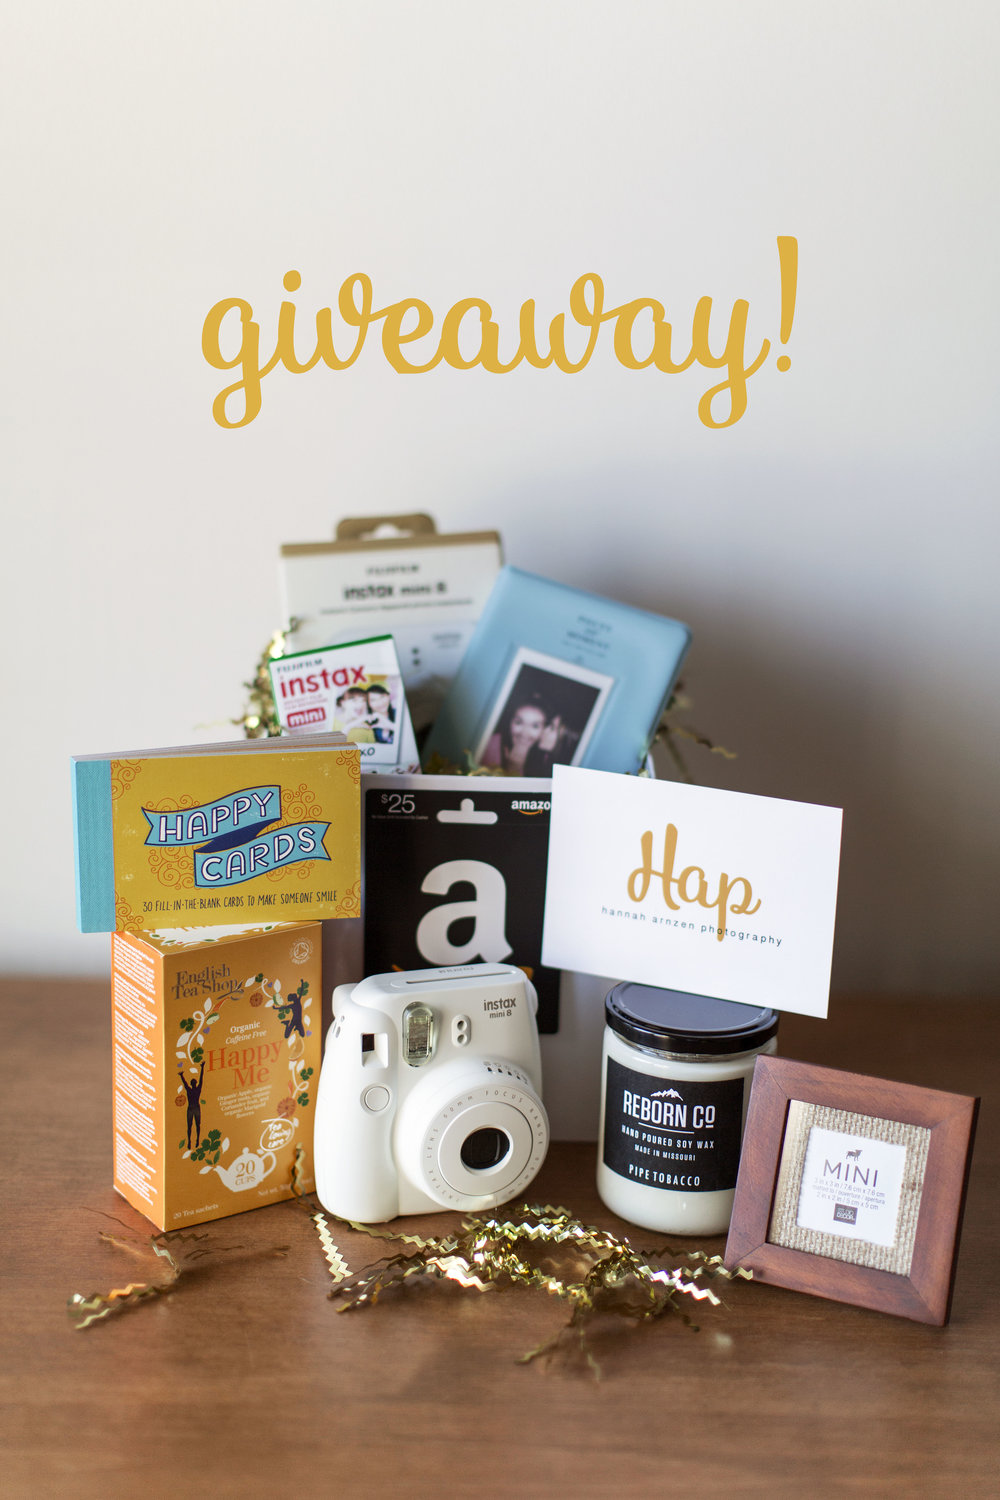 Giveaway items include the following: A BRAND NEW Fujifilm instax mini 8 camera, colored film for the instax mini 8, (1) photo album for your polaroids, (1) $25 gift card to Amazon, (1) HAPPY CARDS book, (1) box of organic Happy Me tea, (1) Pipe Tobacco soy wax candle from REBORN CO, (1) $50.00 gift certificate towards a HAP photo session, and (1) wooden photo frame with YOUR entry photo!